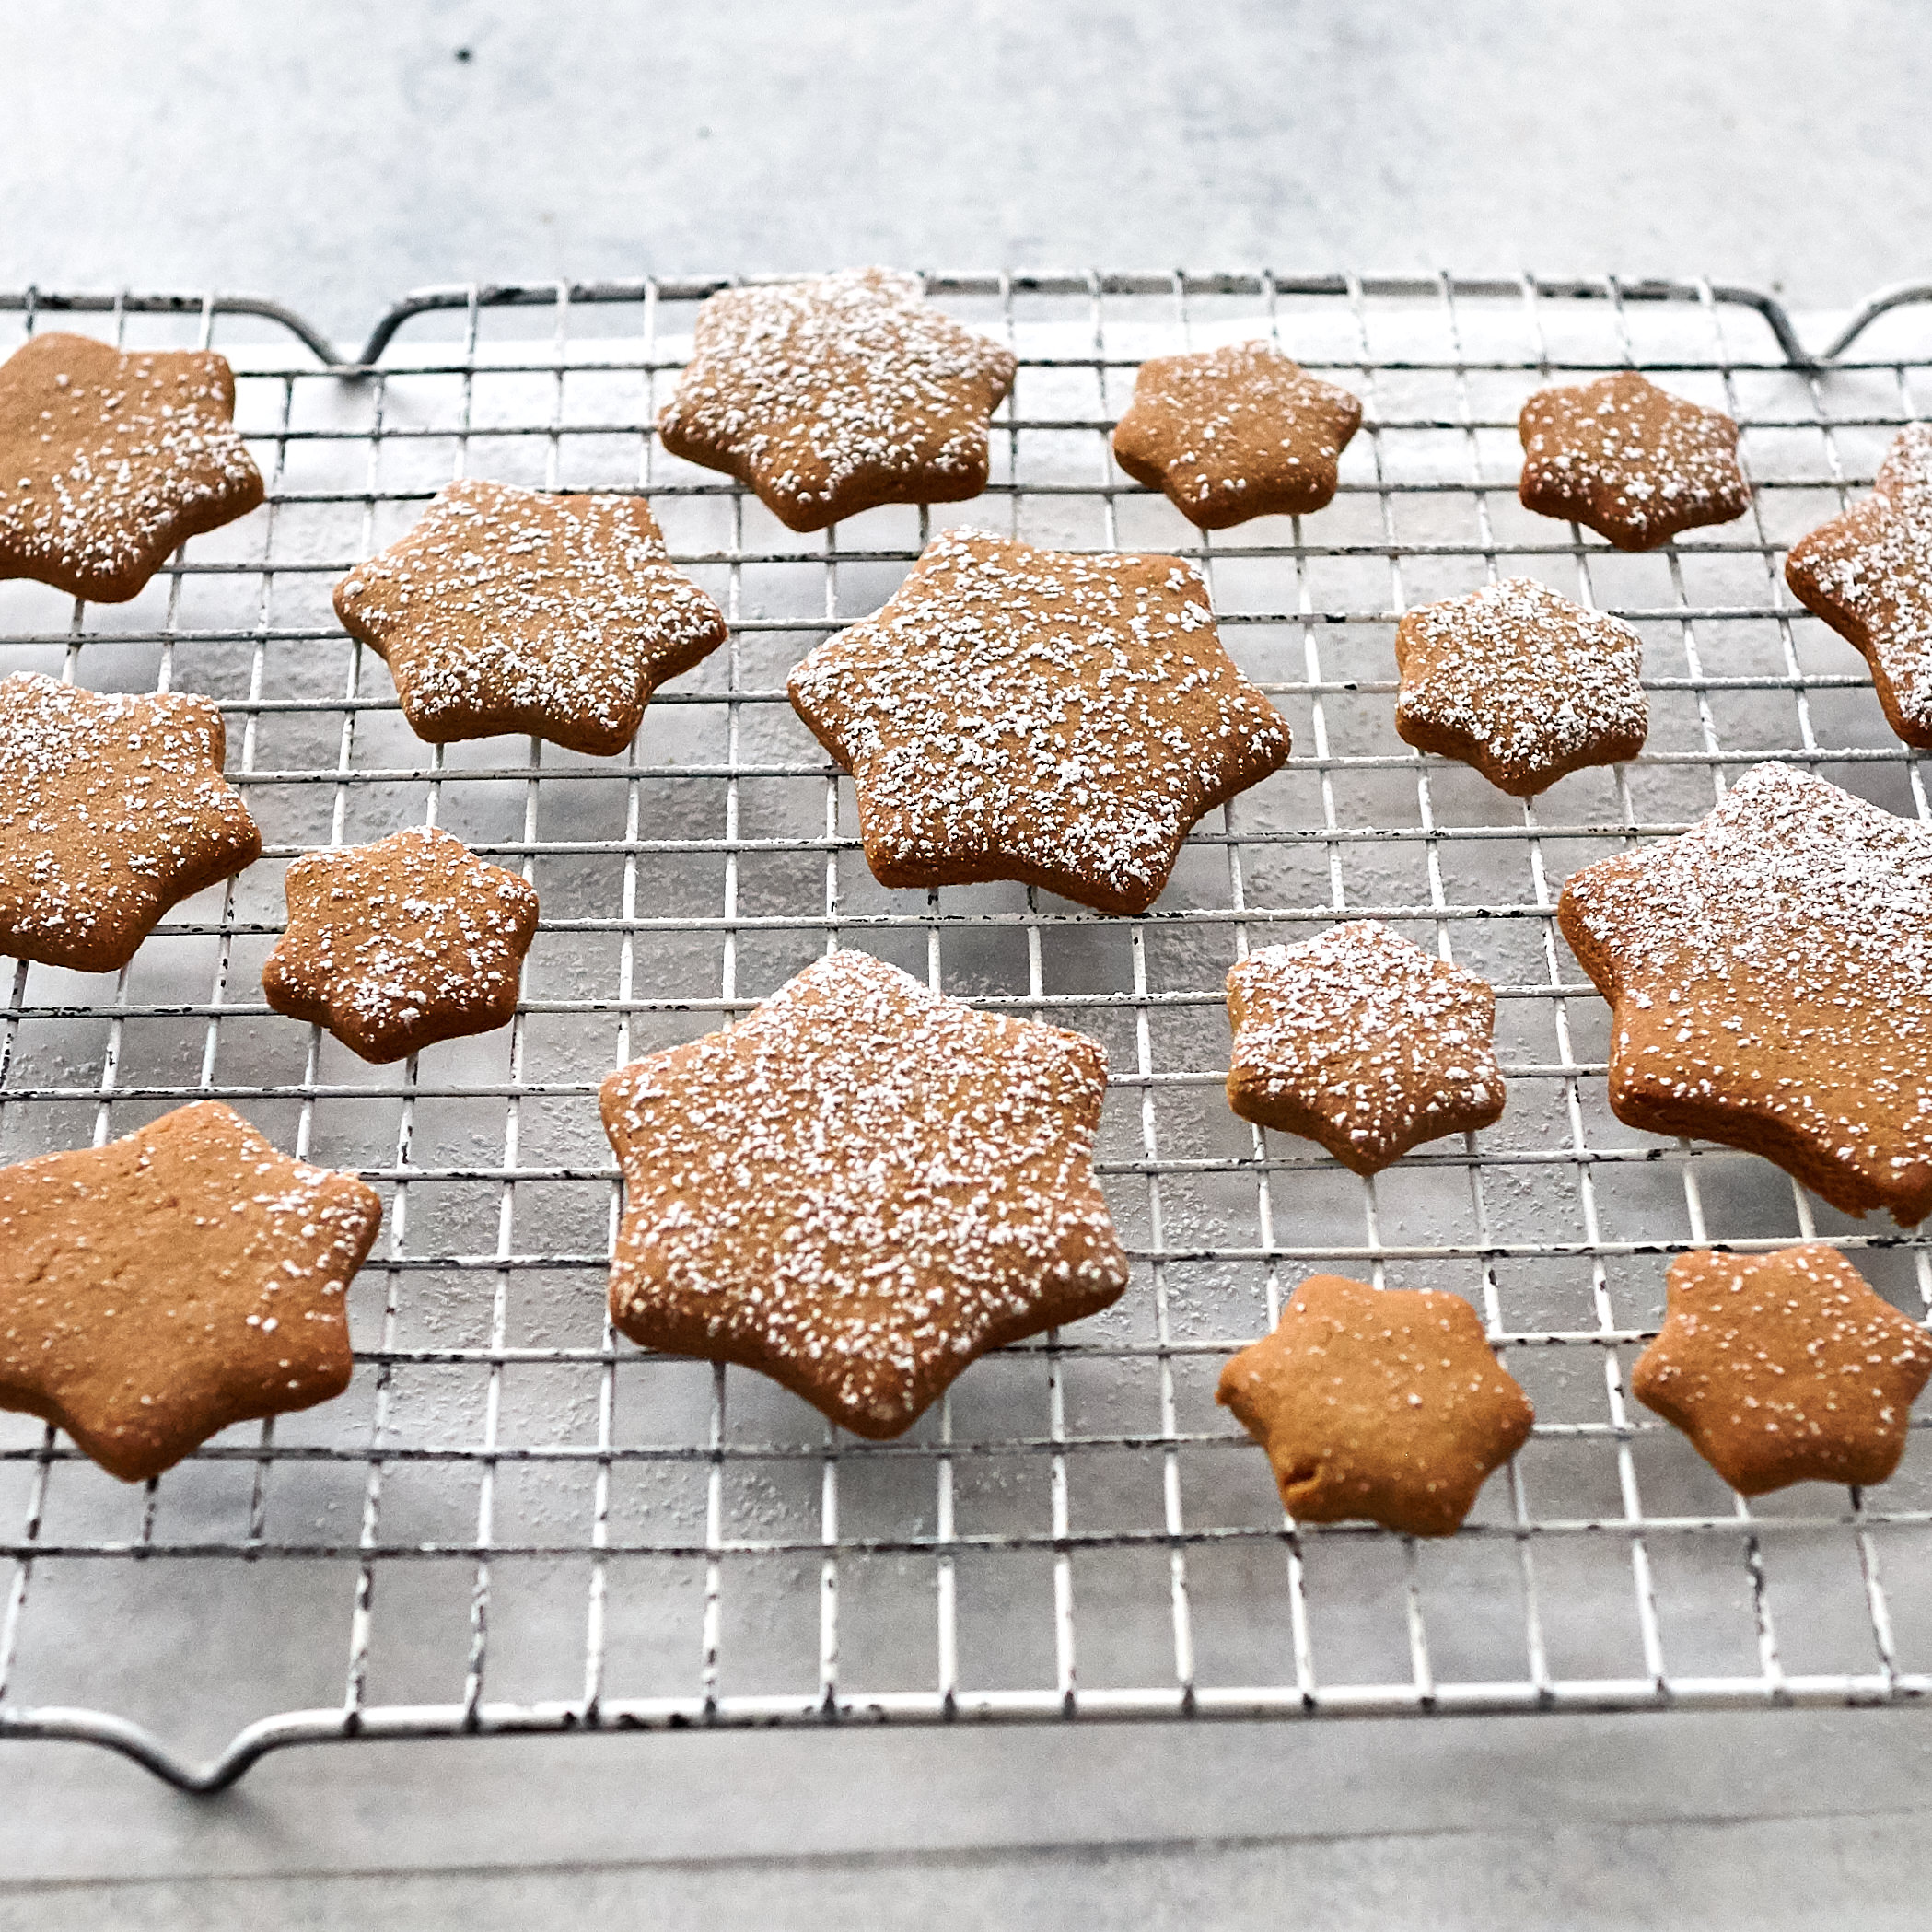 Thermomix gingerbread 1.jpg